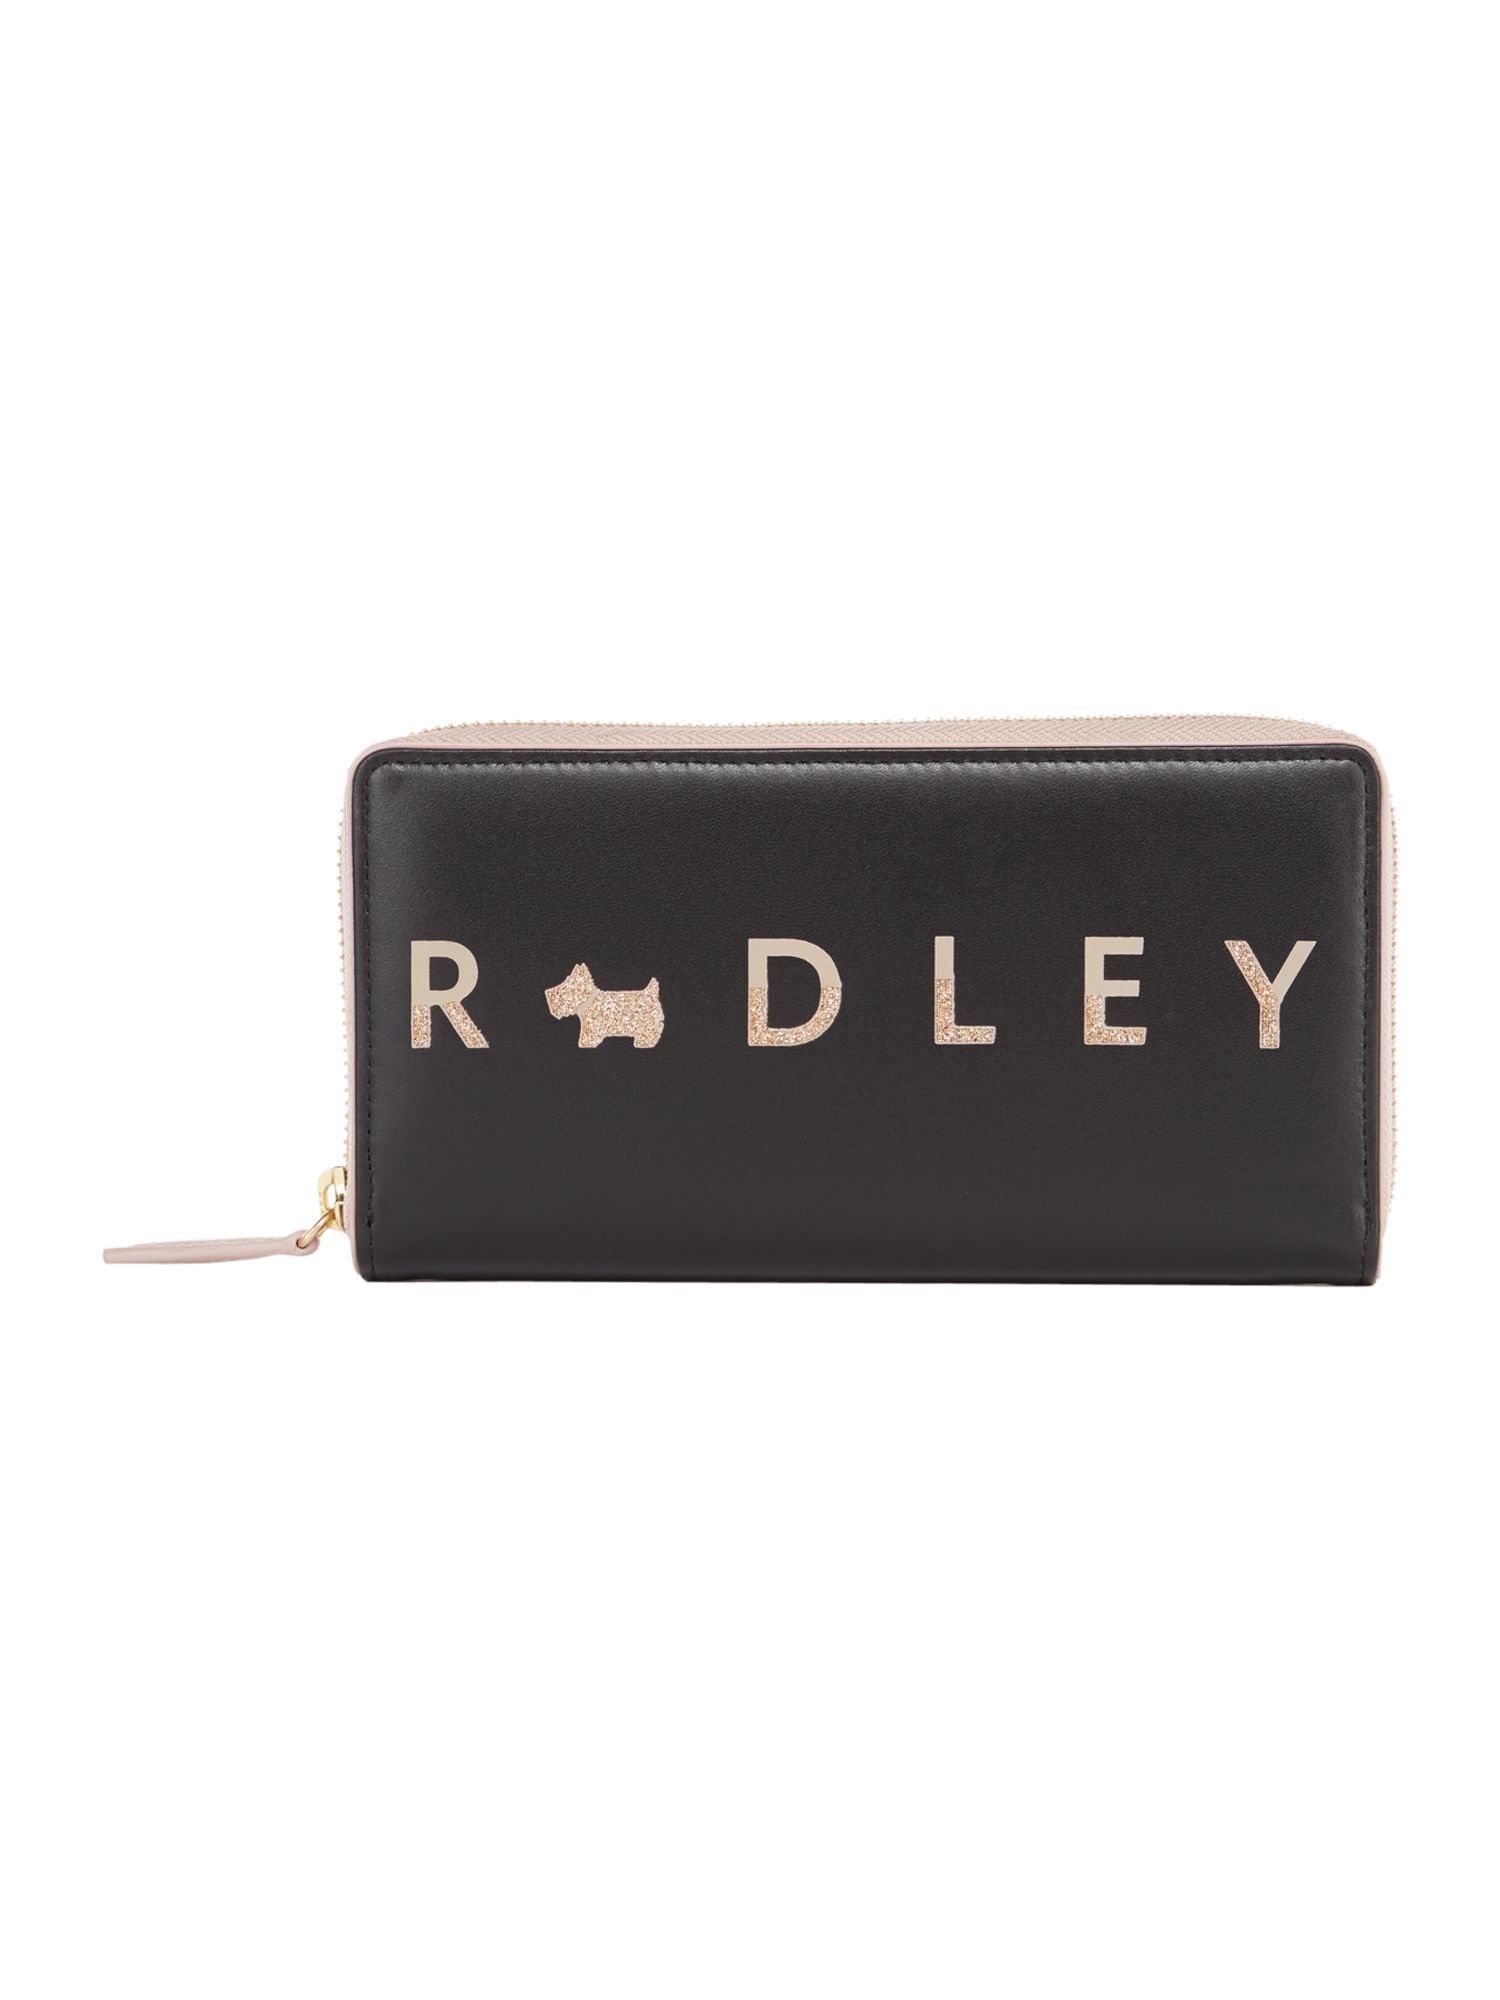 Radley All that glitters large zip around matinee purse, Black